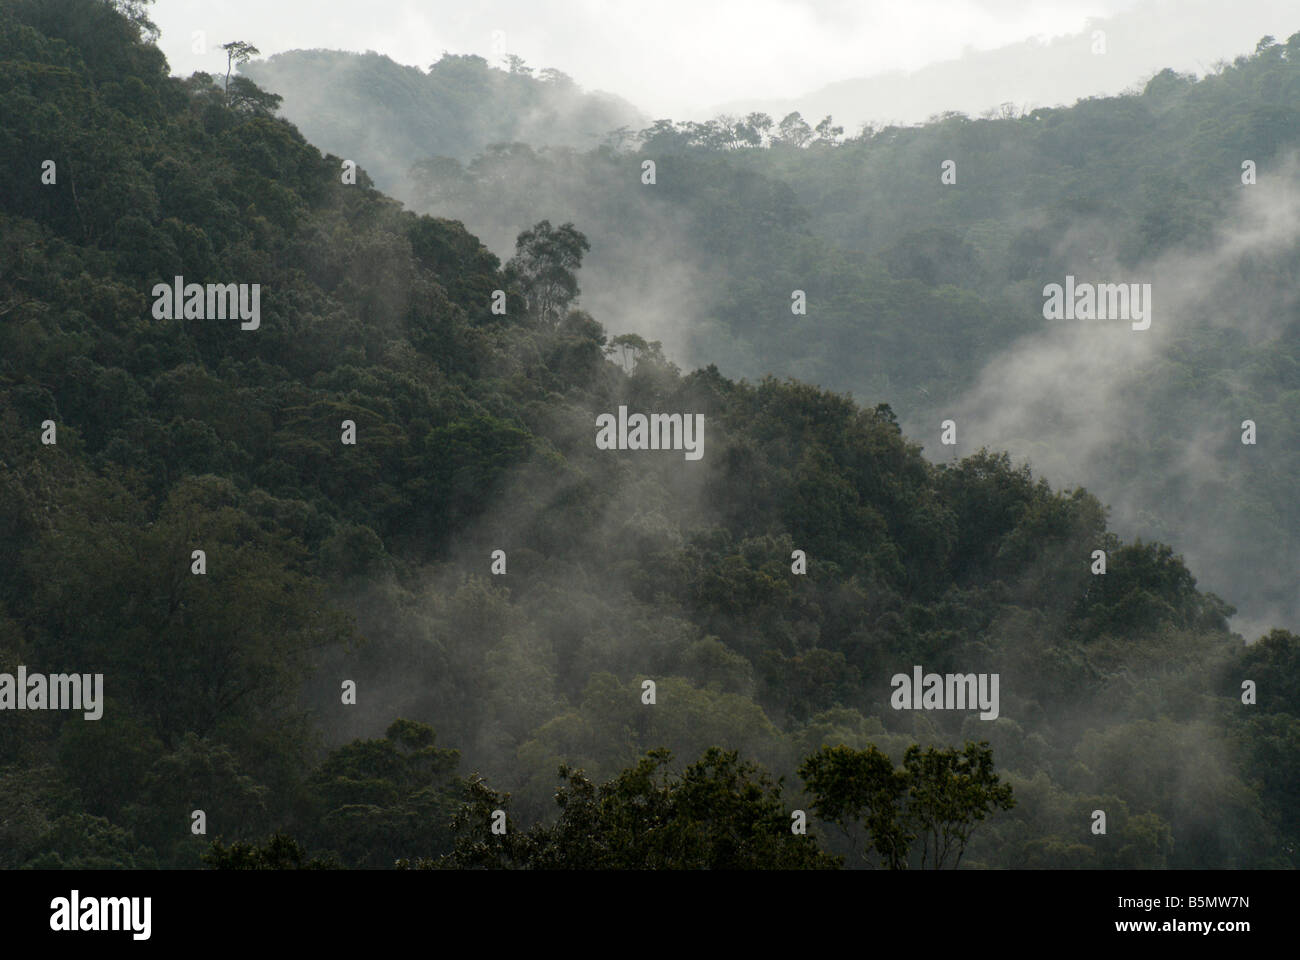 misty-cloud-forest-and-mountains-near-ma